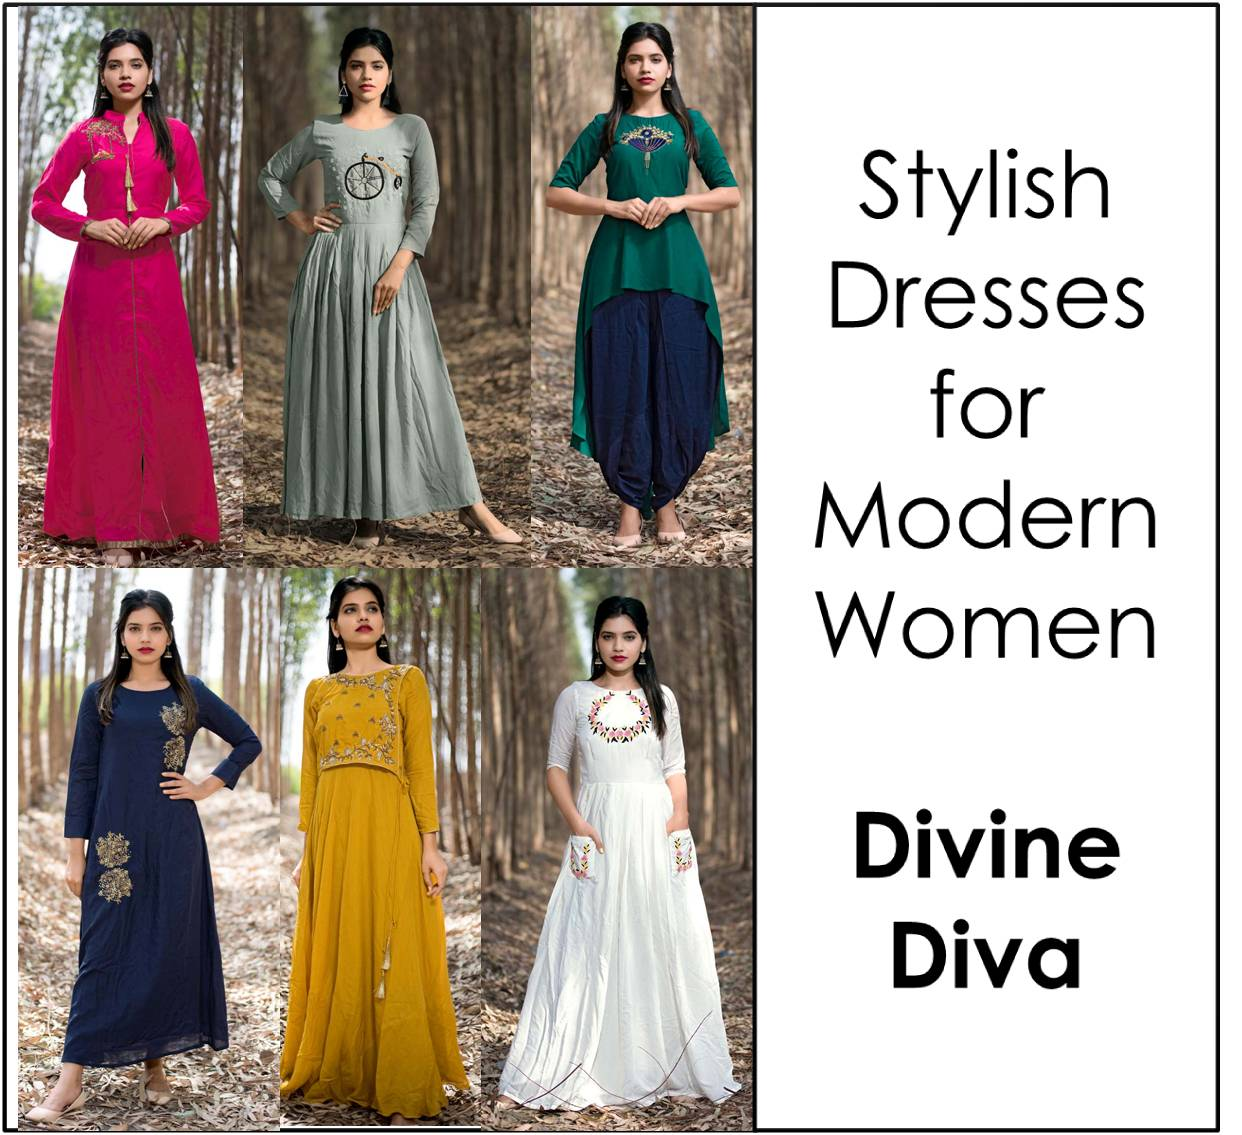 Stylish Dresses Divine Diva